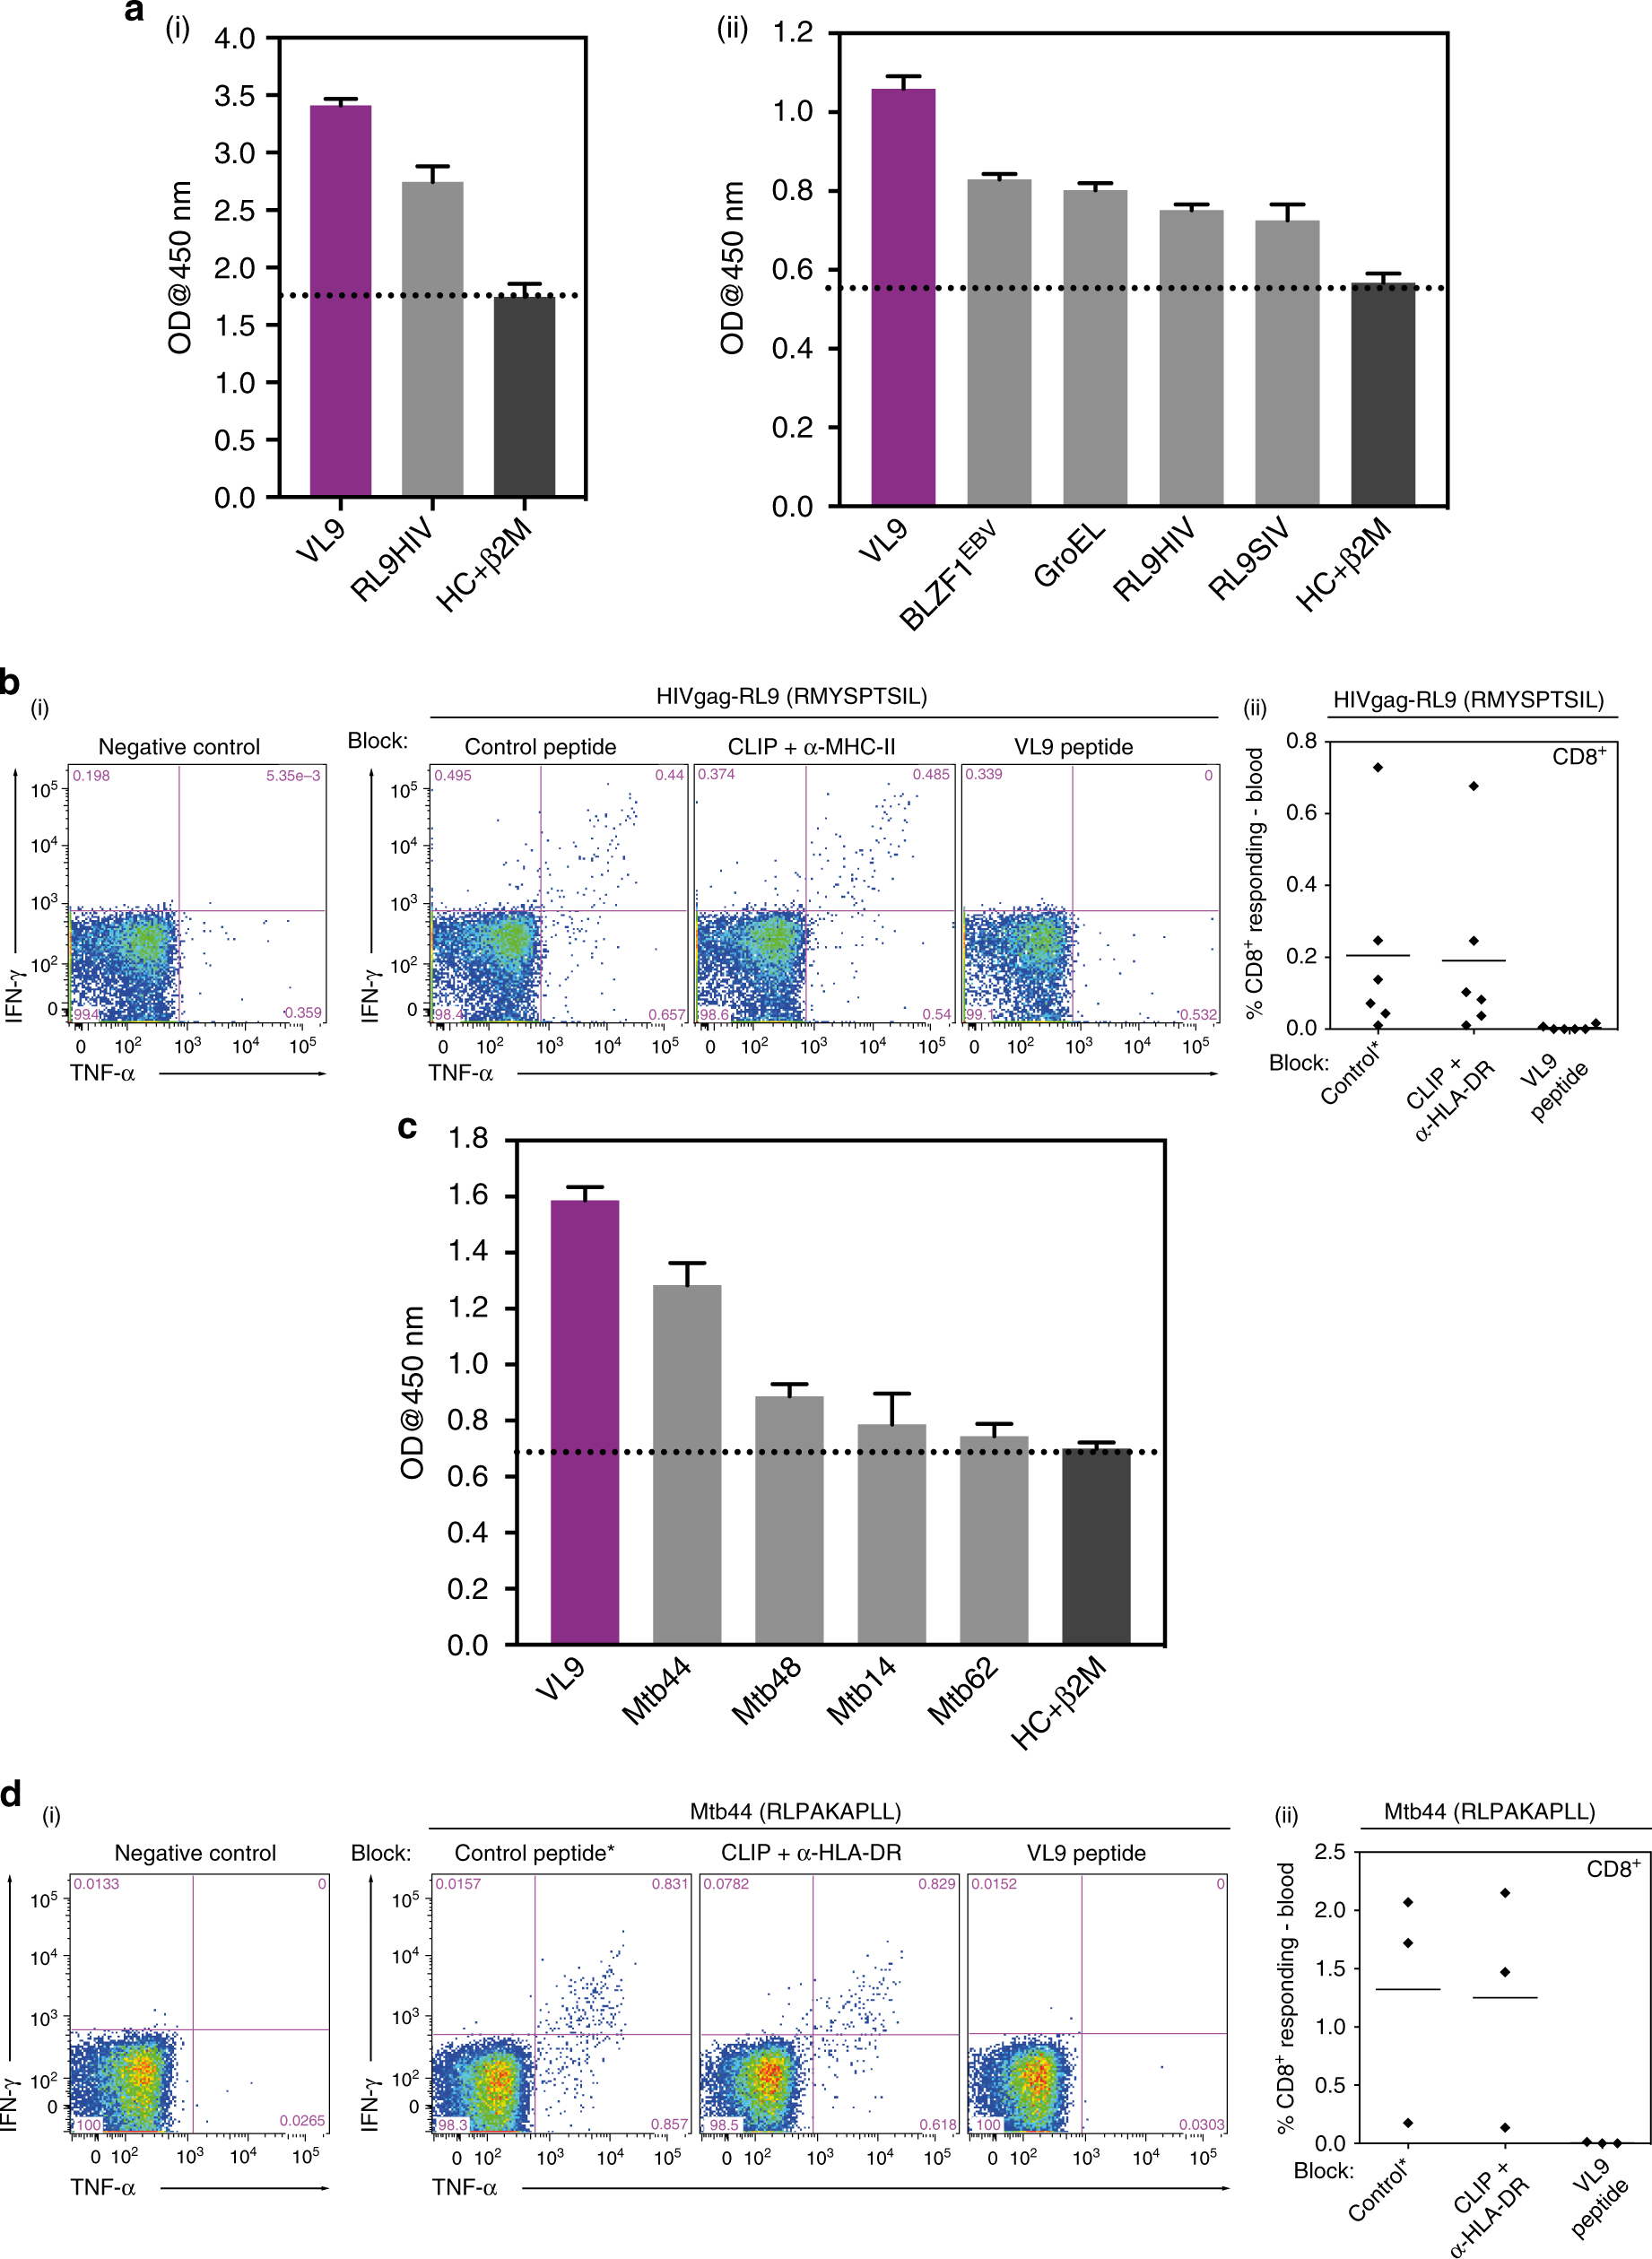 Pathogen Derived Hla E Bound Epitopes Reveal Broad Primary Anchor L200 Based Voltage Regulators Pocket Tolerability And Conformationally Malleable Peptide Binding Nature Communications